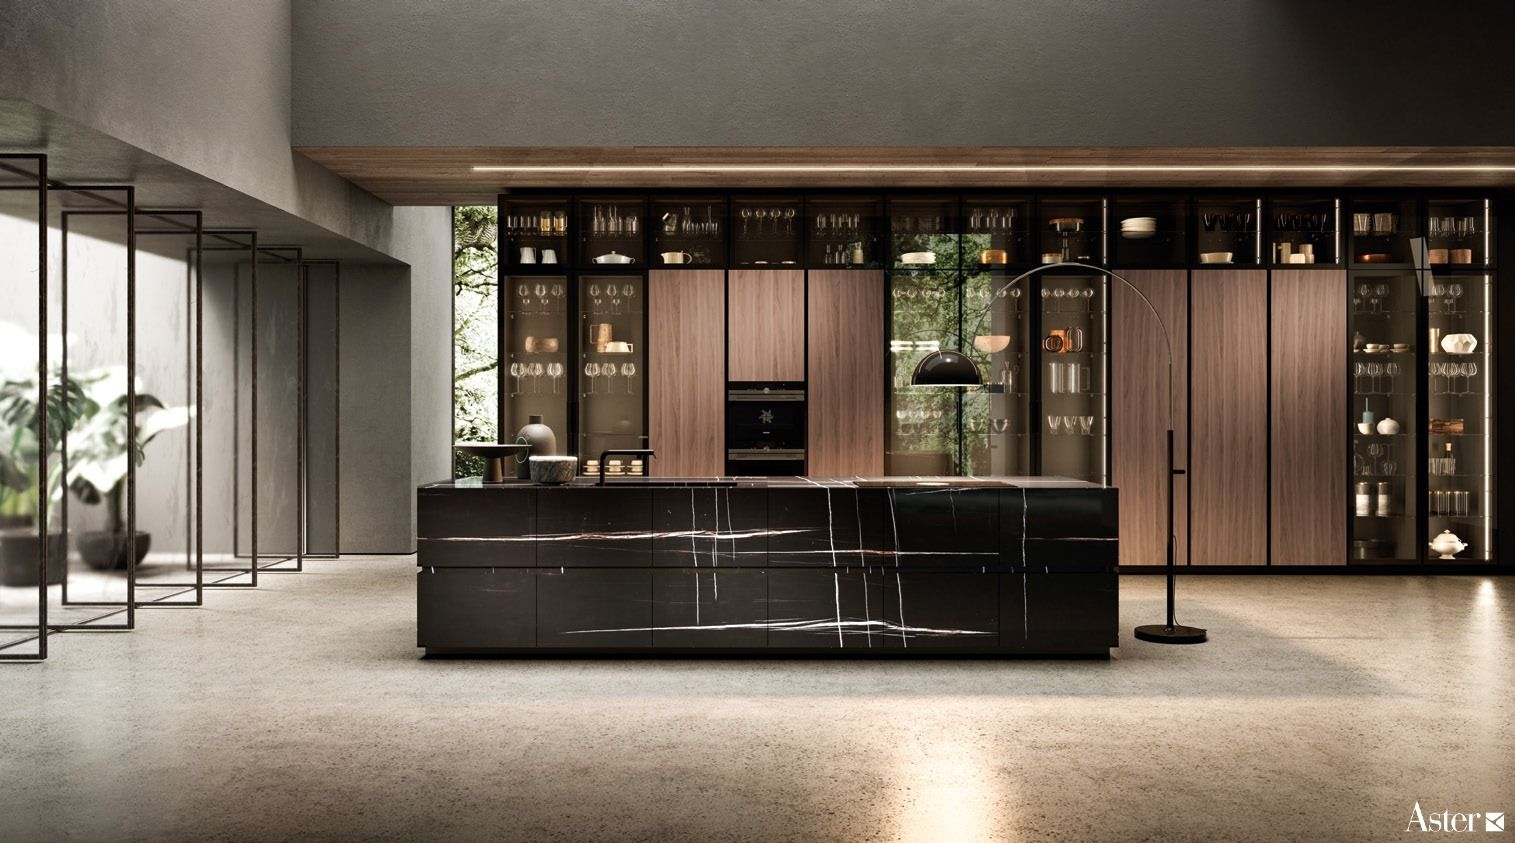 Contempora By Aster Cucine The Contemporaneity And Internationality Of Being Made In Italy Modern Kitchen Design Contemporary Kitchen Design Modern Kitchen